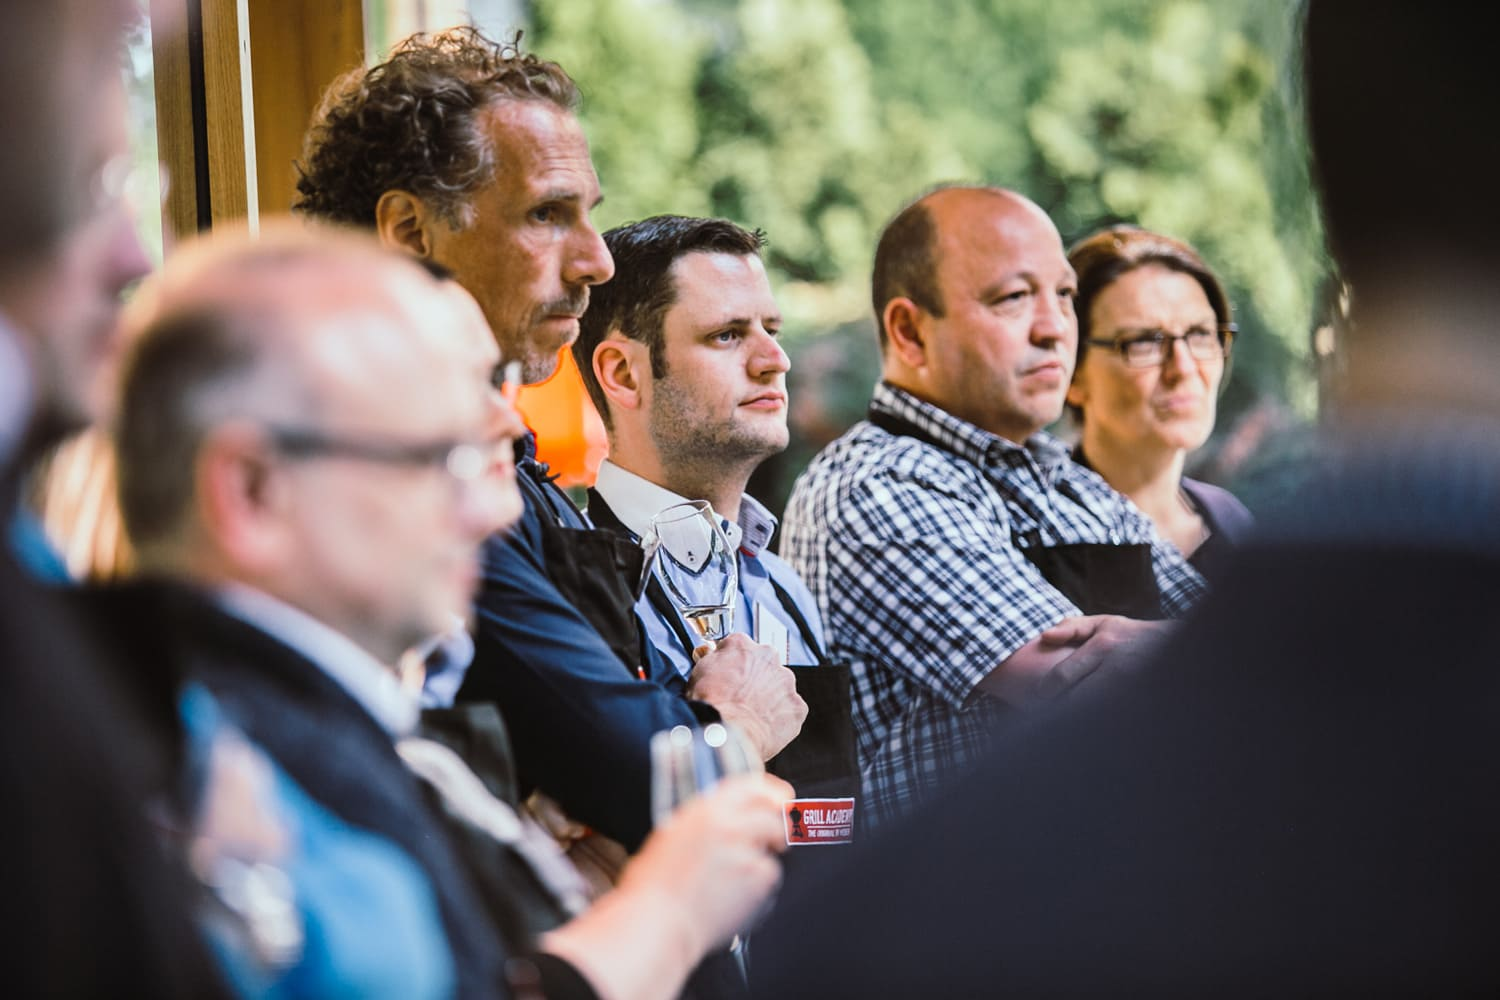 onOffice Roadshow 2019 in Ingelheim am Rhein